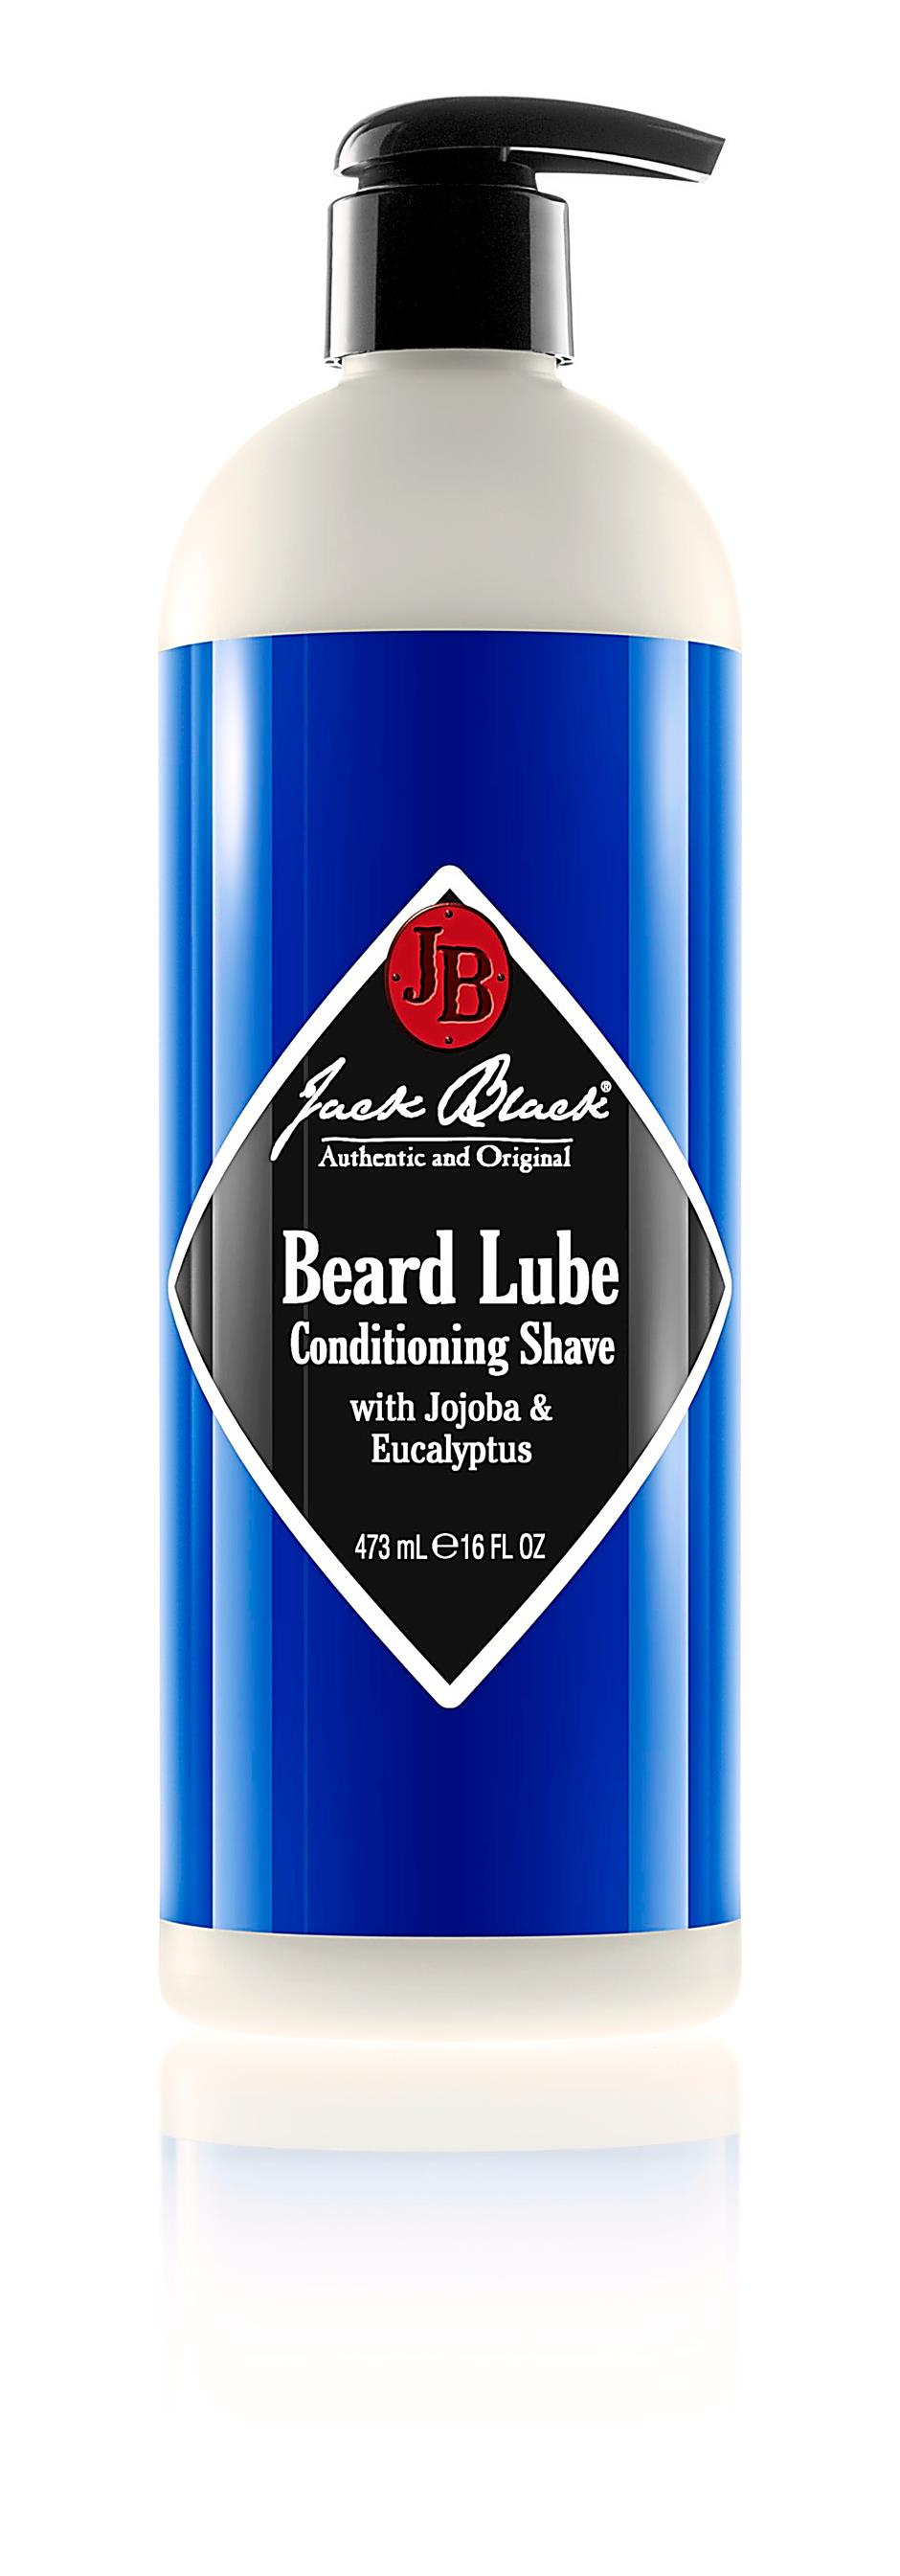 From top:  Award-winning Jack Black Beard Lube Conditioning Shave; Jack Black Pure Clean Daily Facial Cleanser; Jack Black Double-duty Face Moisturiser SPF 20.